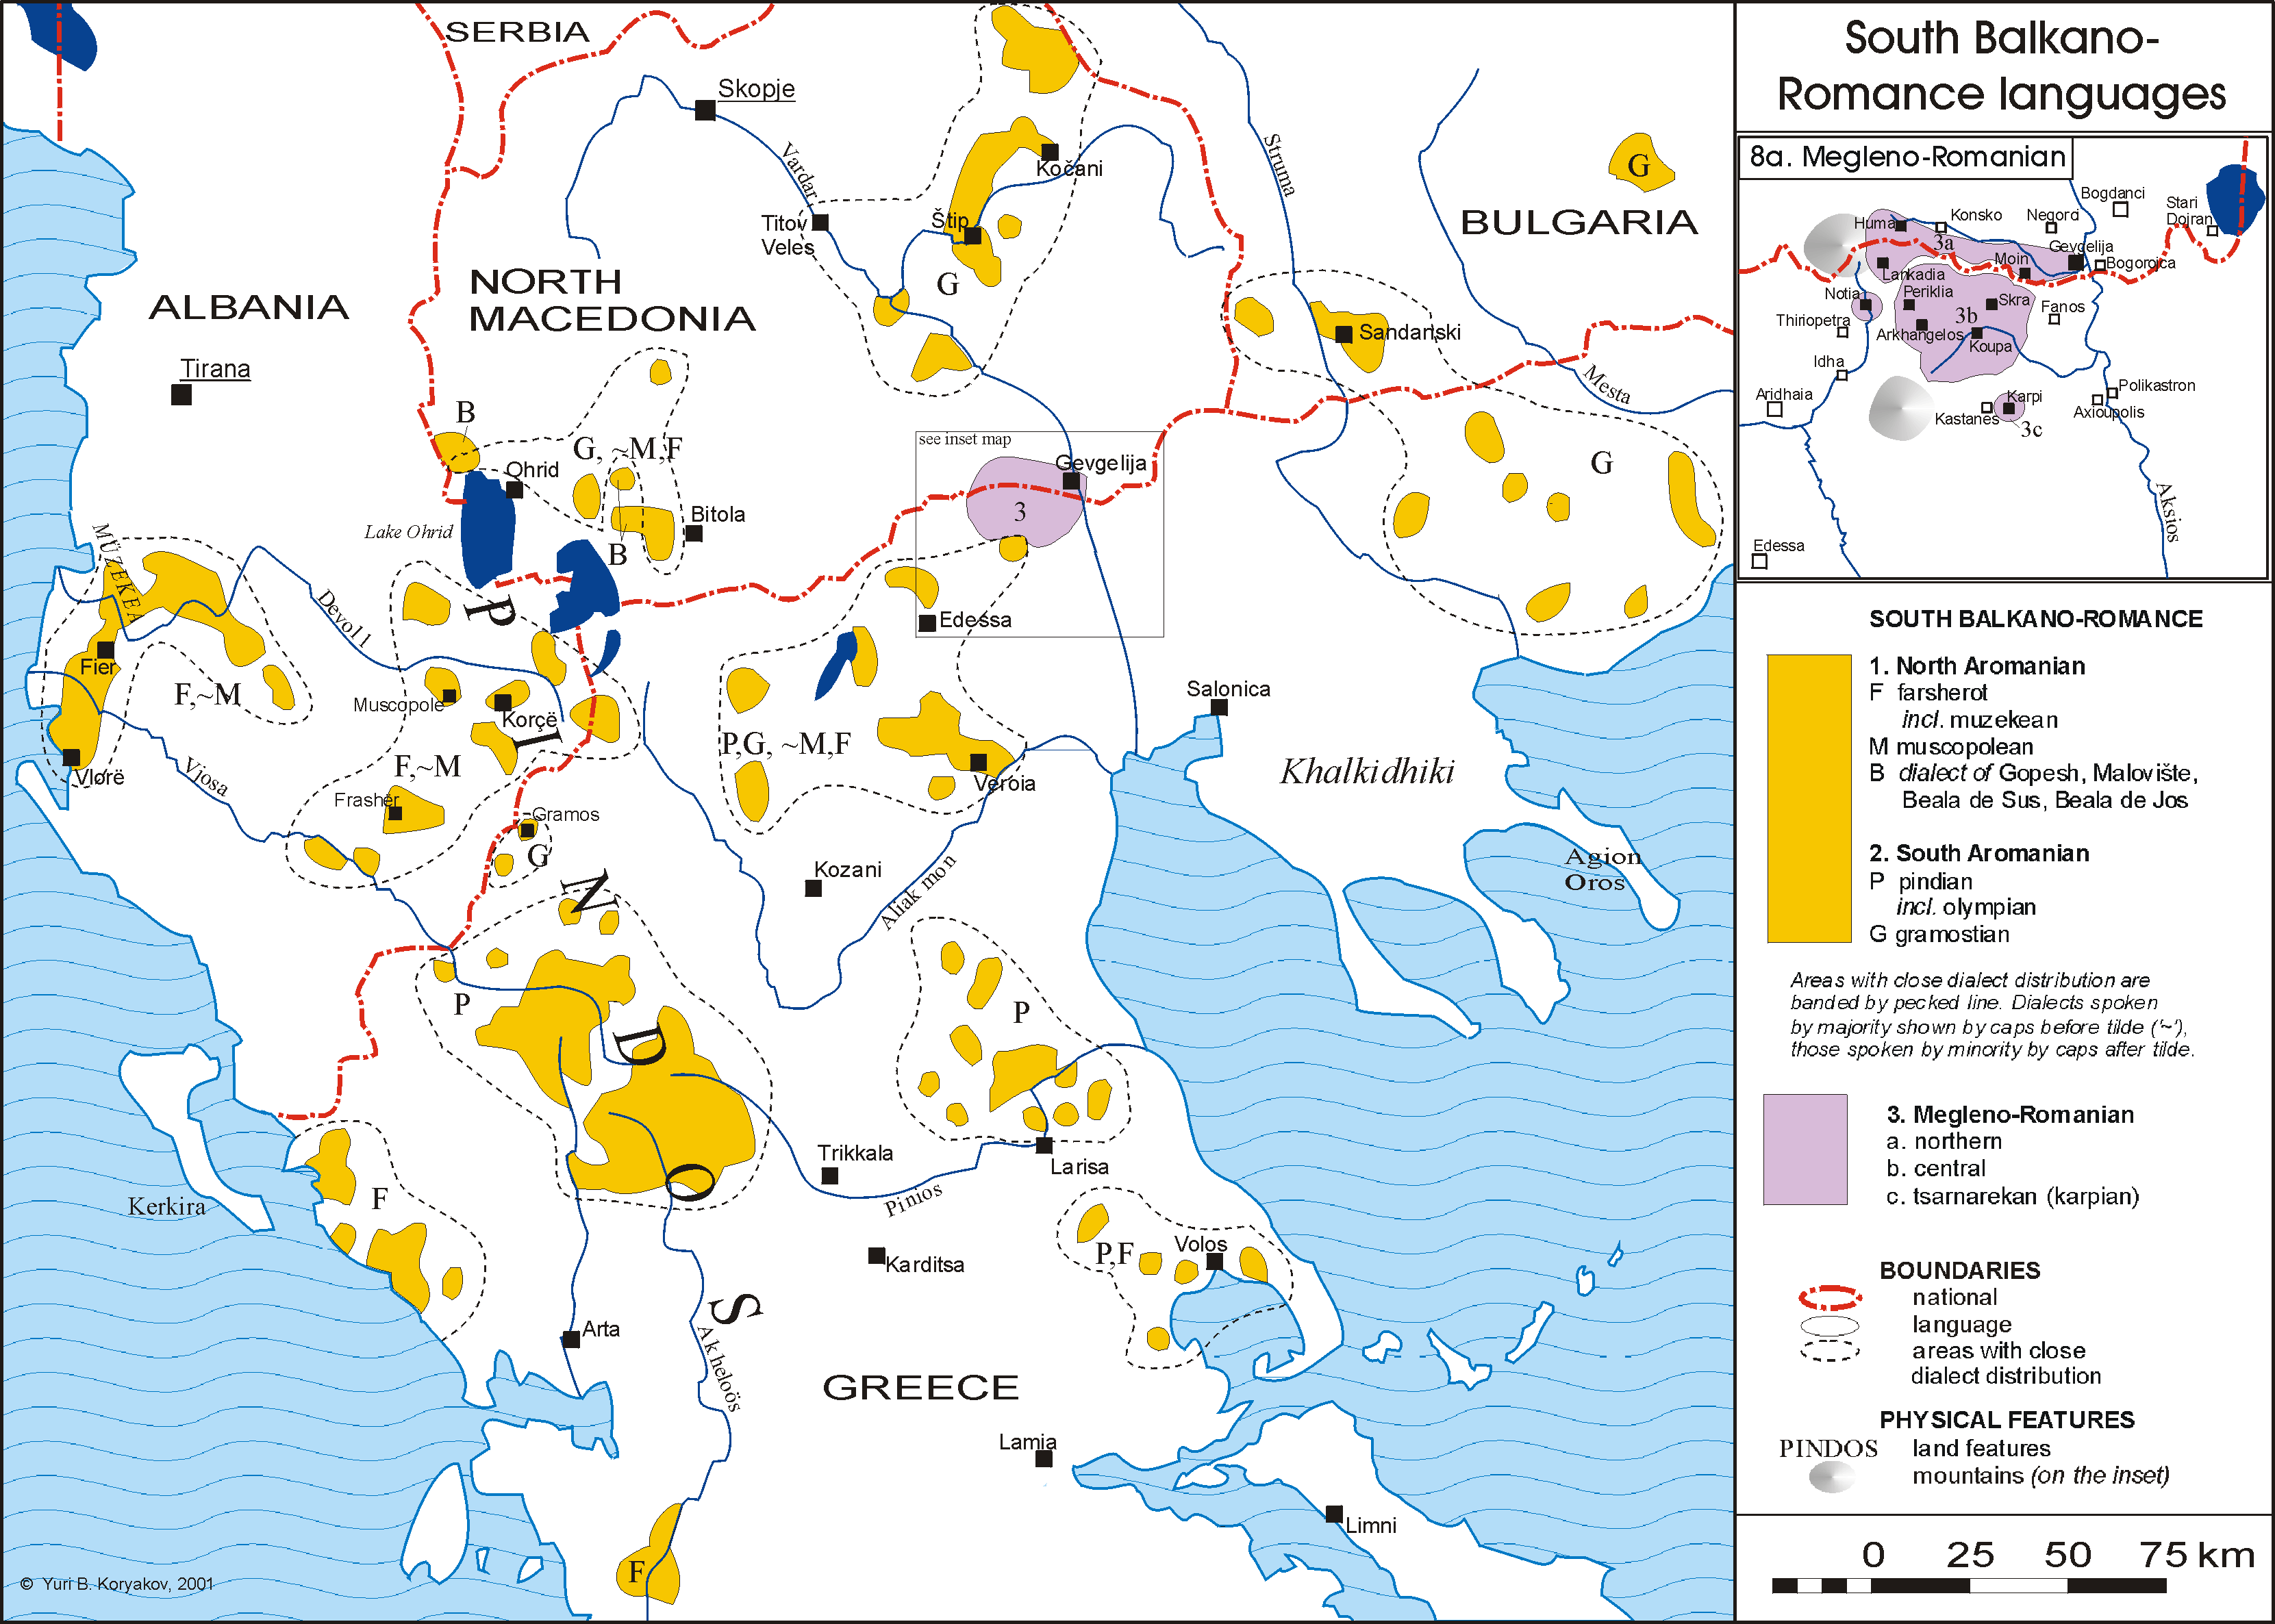 File:South-Balkan-Romance-languages.png - Wikipedia, the free ...